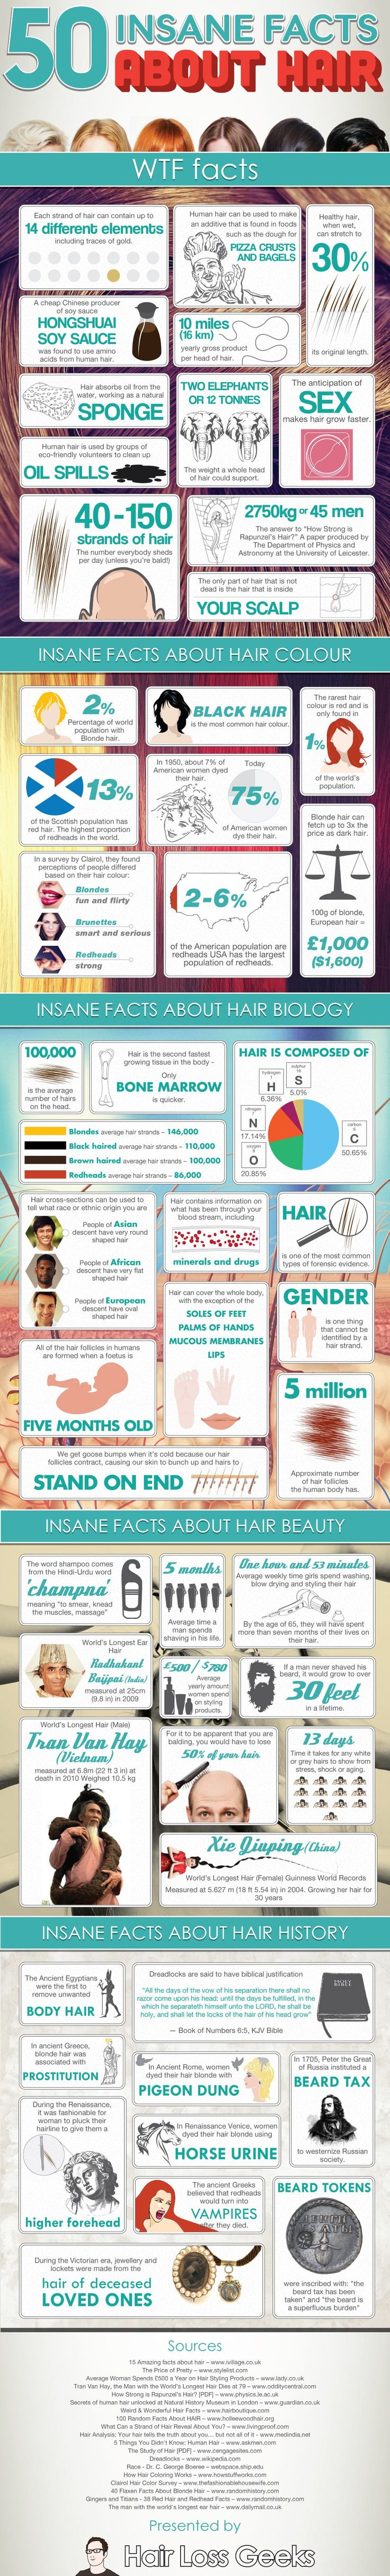 Infographic:  50 Insane Facts About Hair on WomanlyWoman.com